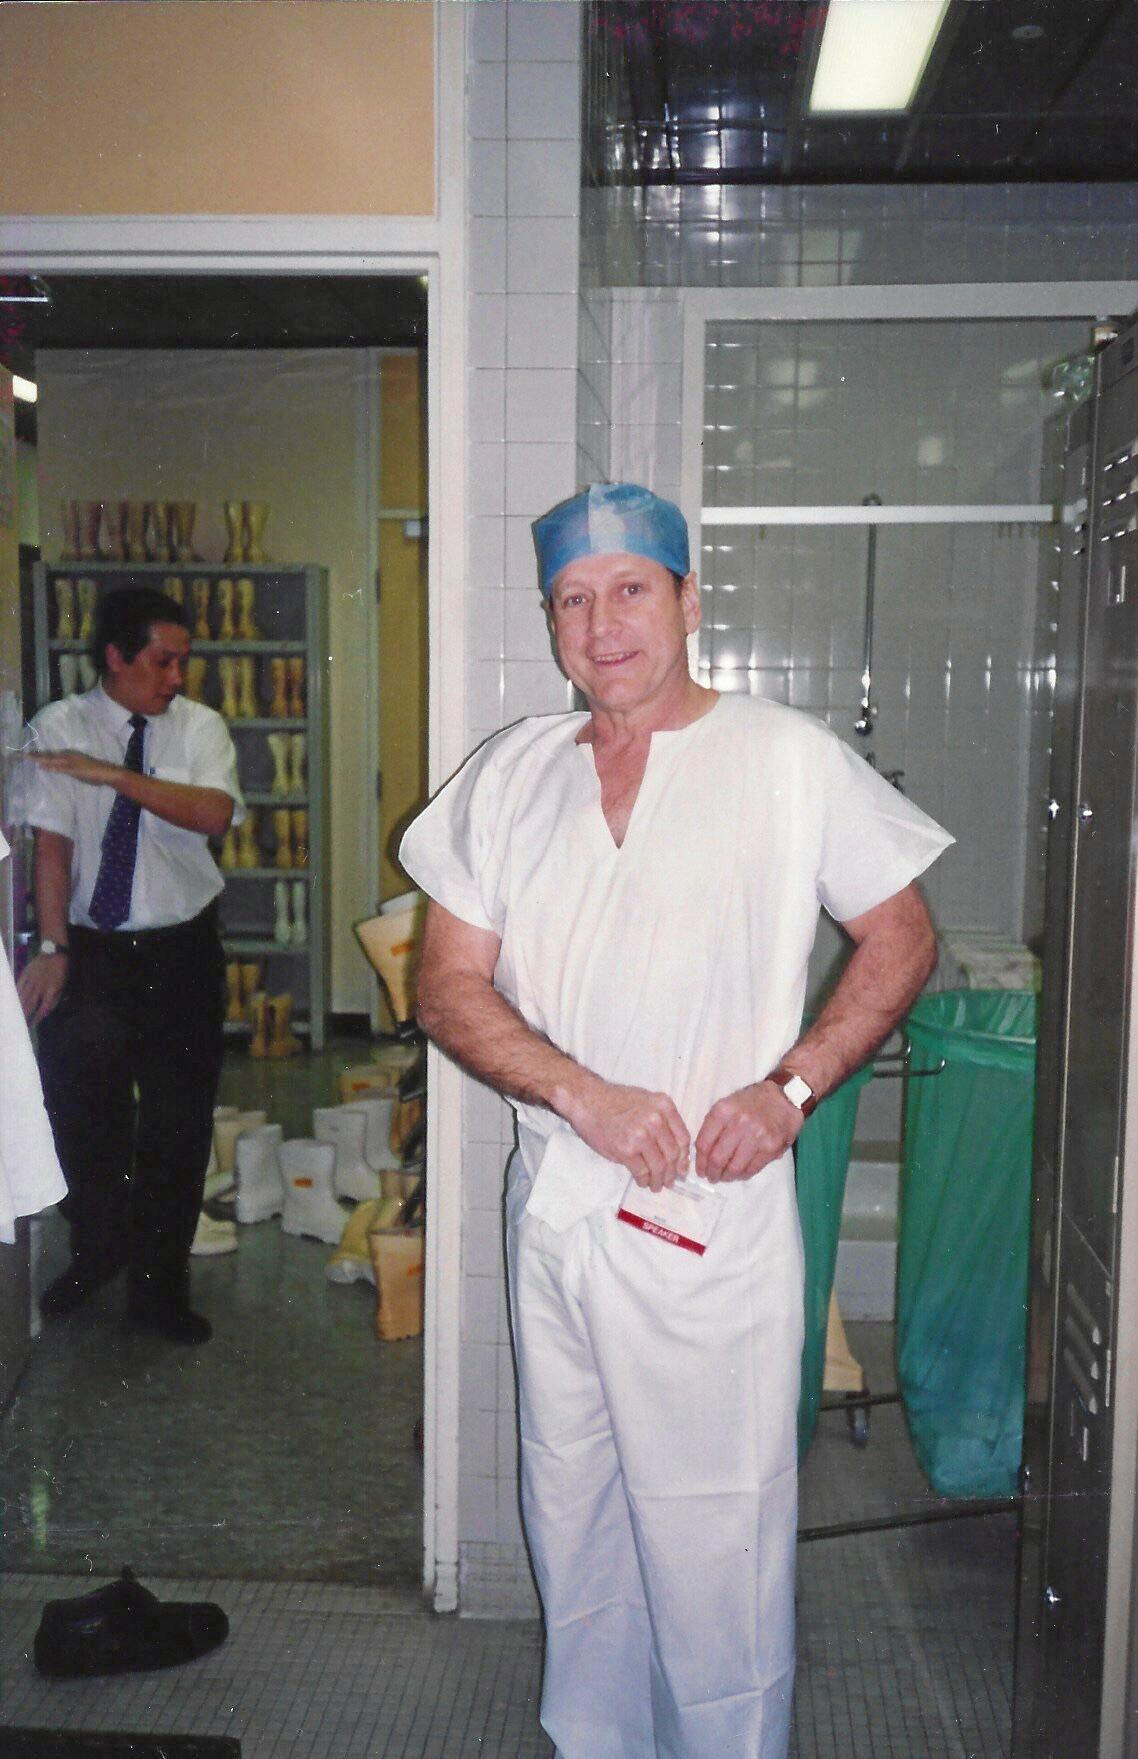 .	Dr Russell Stitz as a visiting surgeon in Singapore in 1993